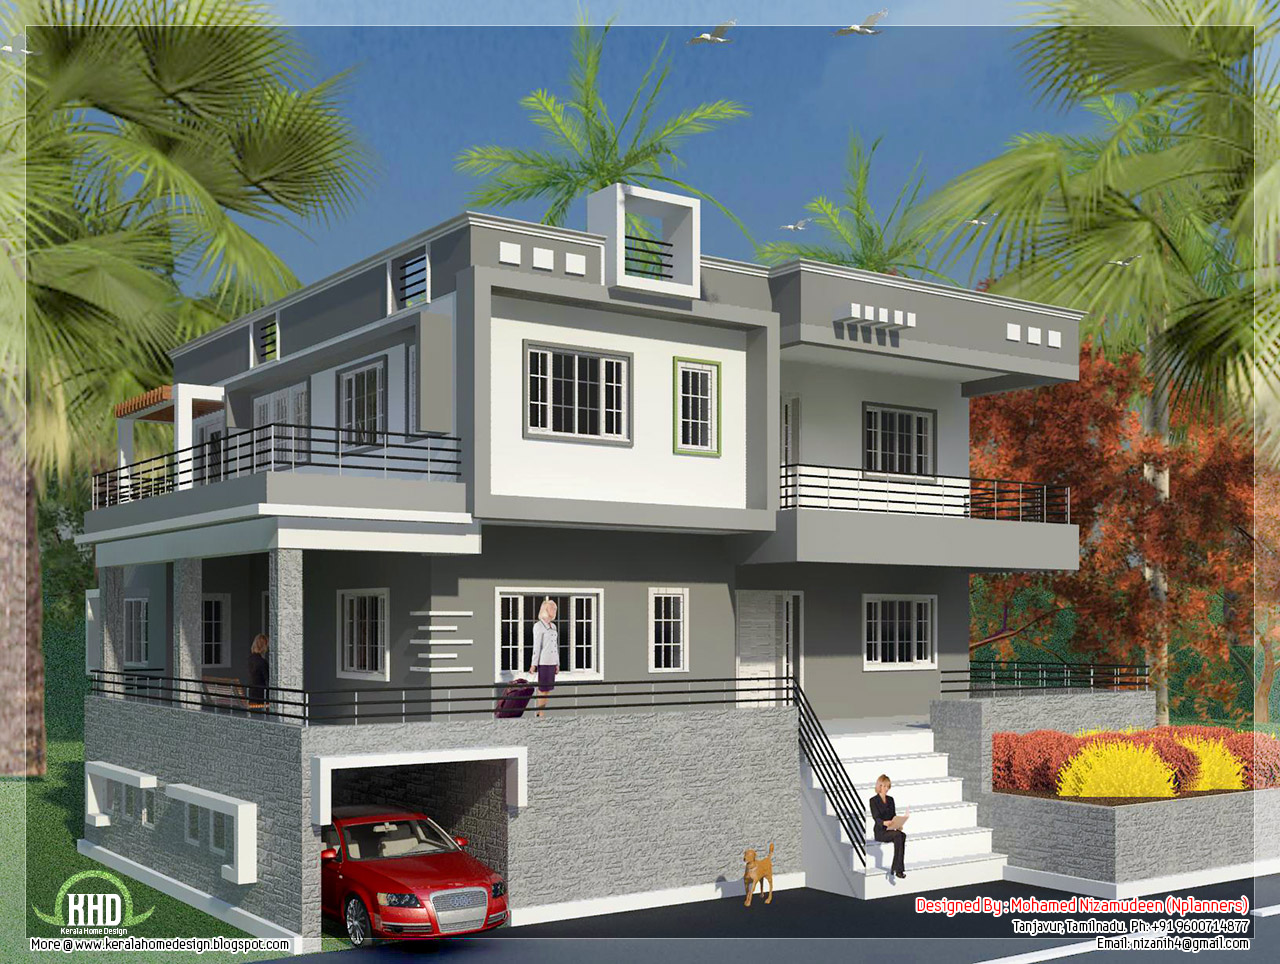 North indian style minimalist house exterior design for Home front design indian style